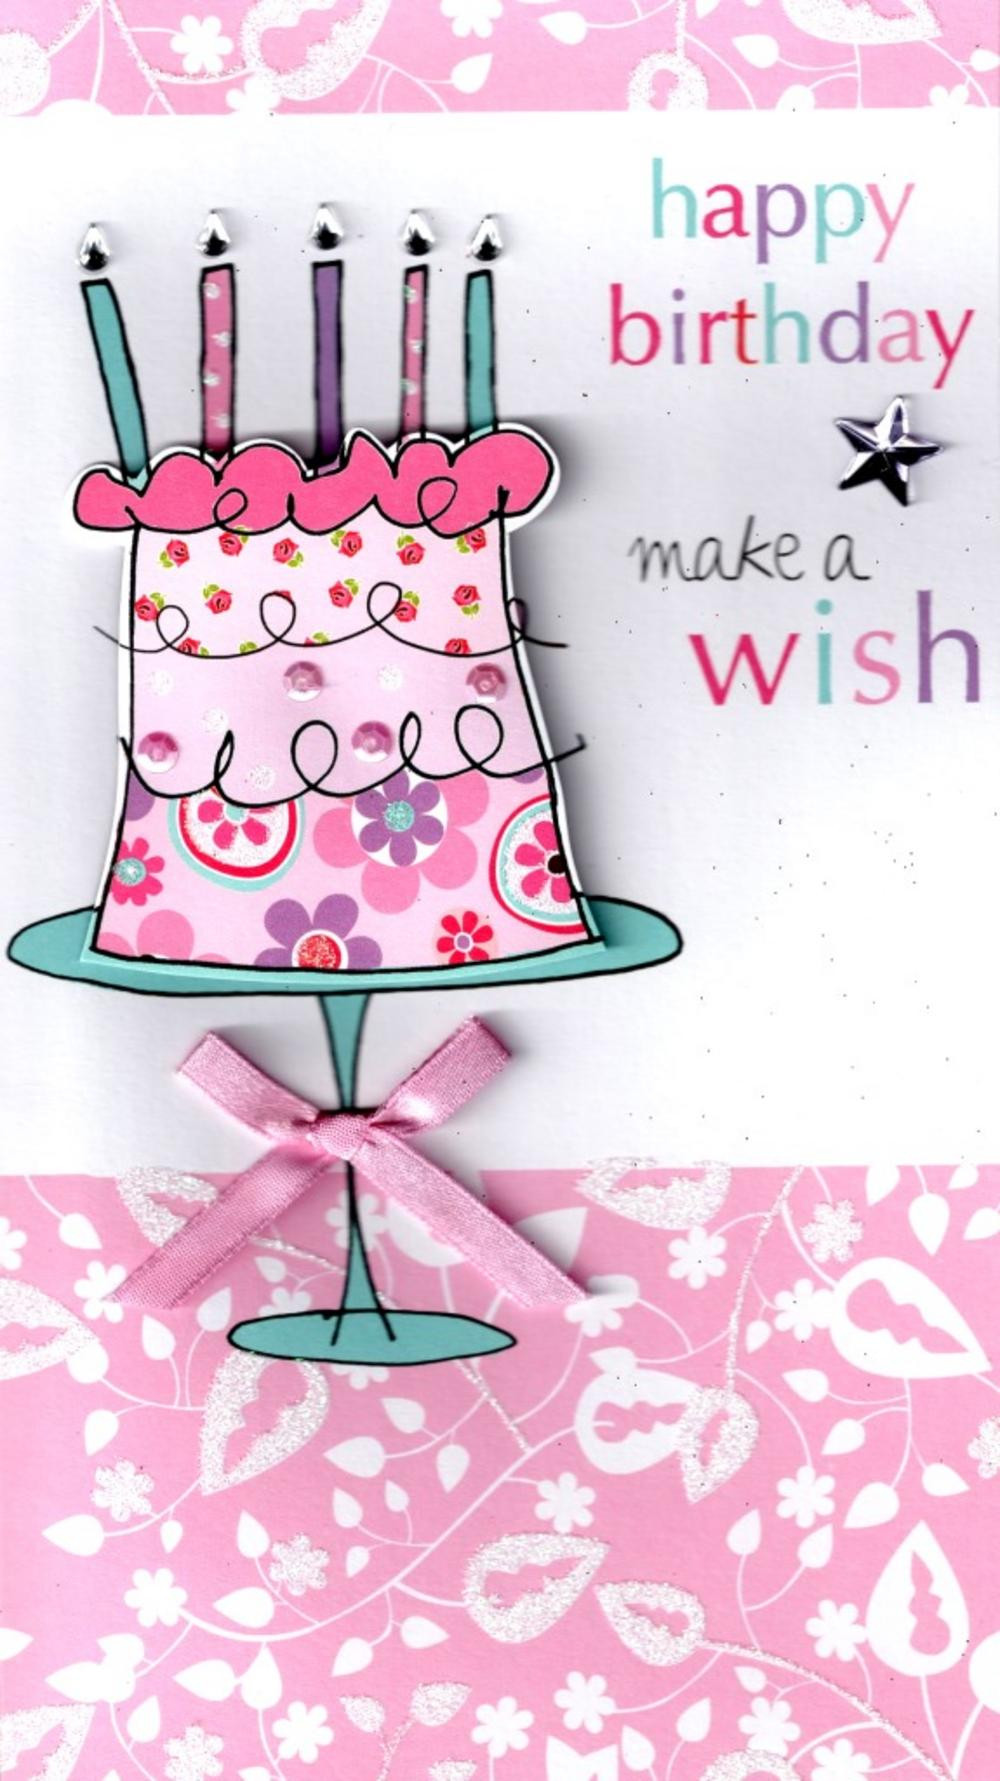 Best ideas about A Birthday Wish . Save or Pin Make A Wish Happy Birthday Greeting Card Now.